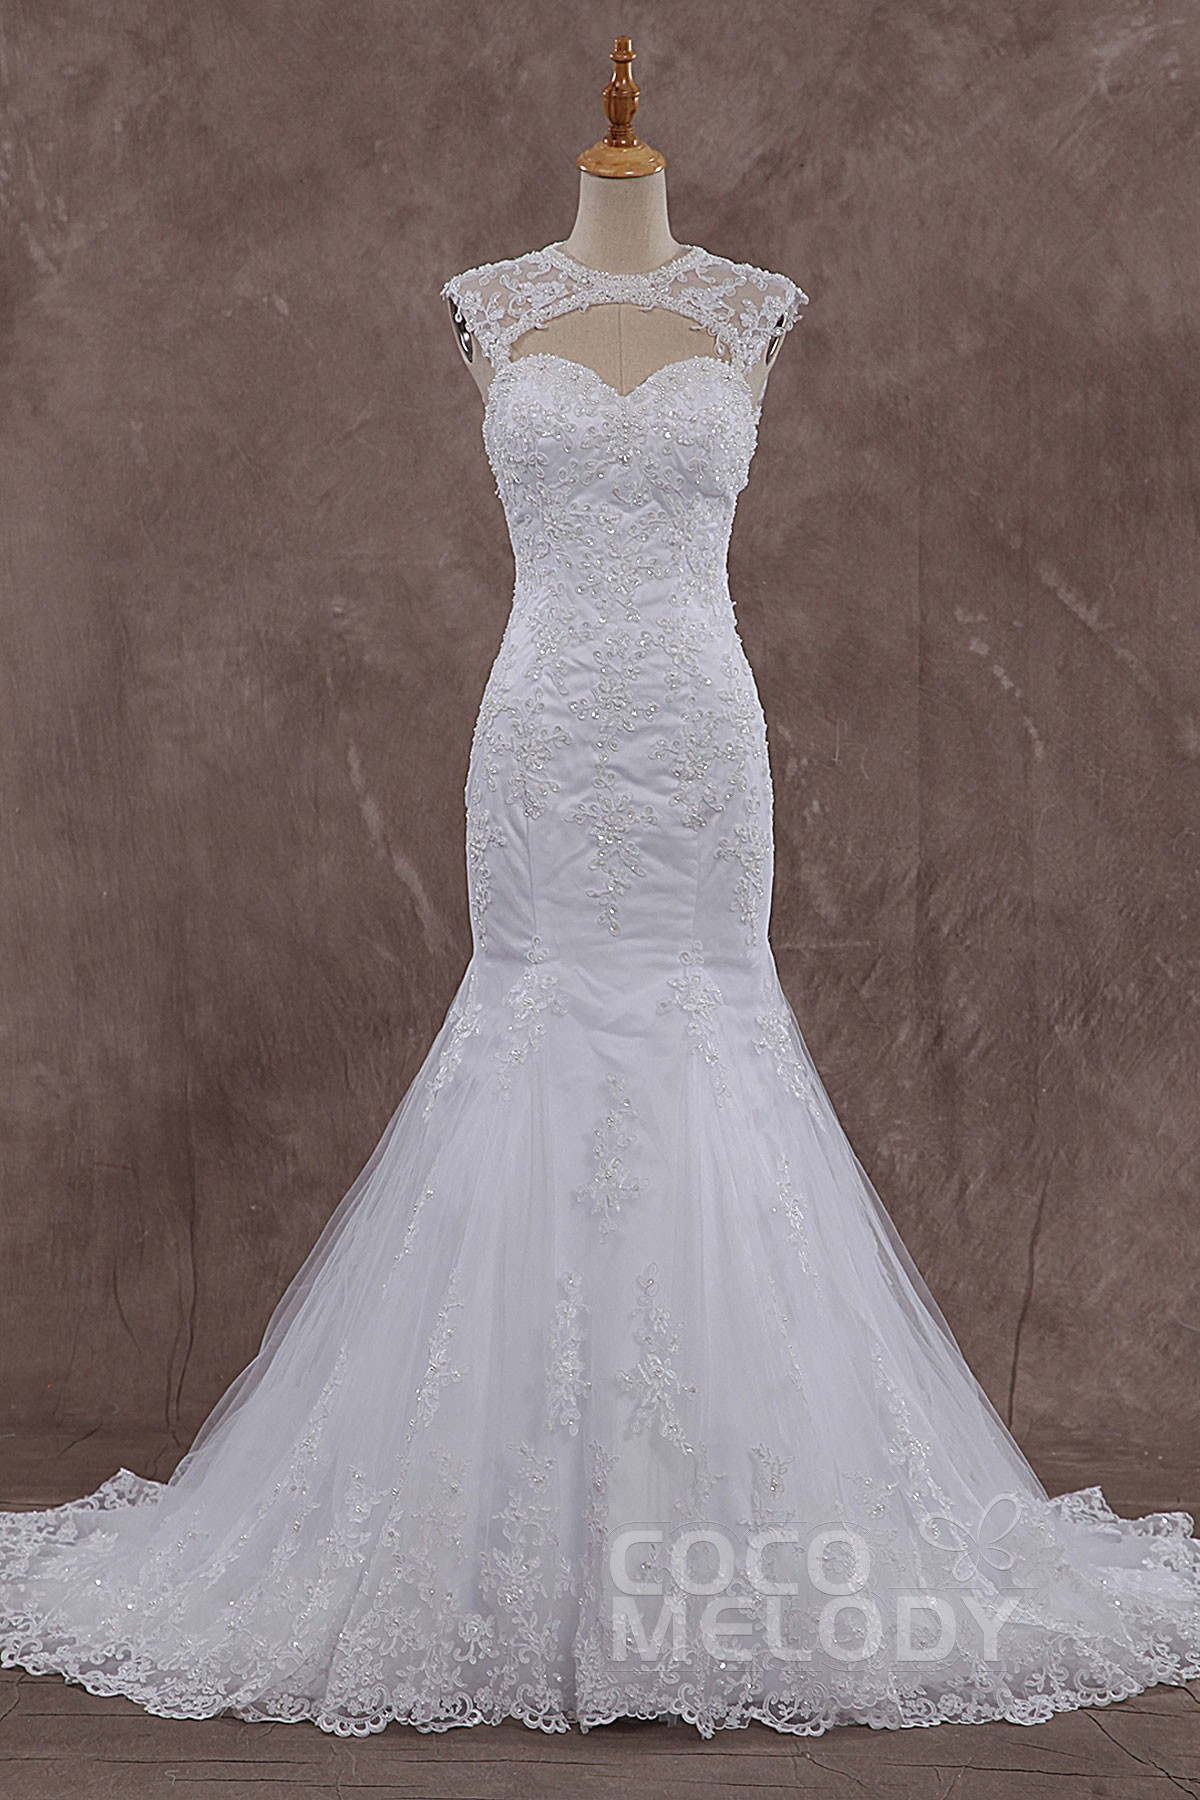 Timeless Trumpet-Mermaid Illusion Dropped Train Tulle White Sleeveless Open Back Wedding Dress with Beading and Appliques CWAT15003